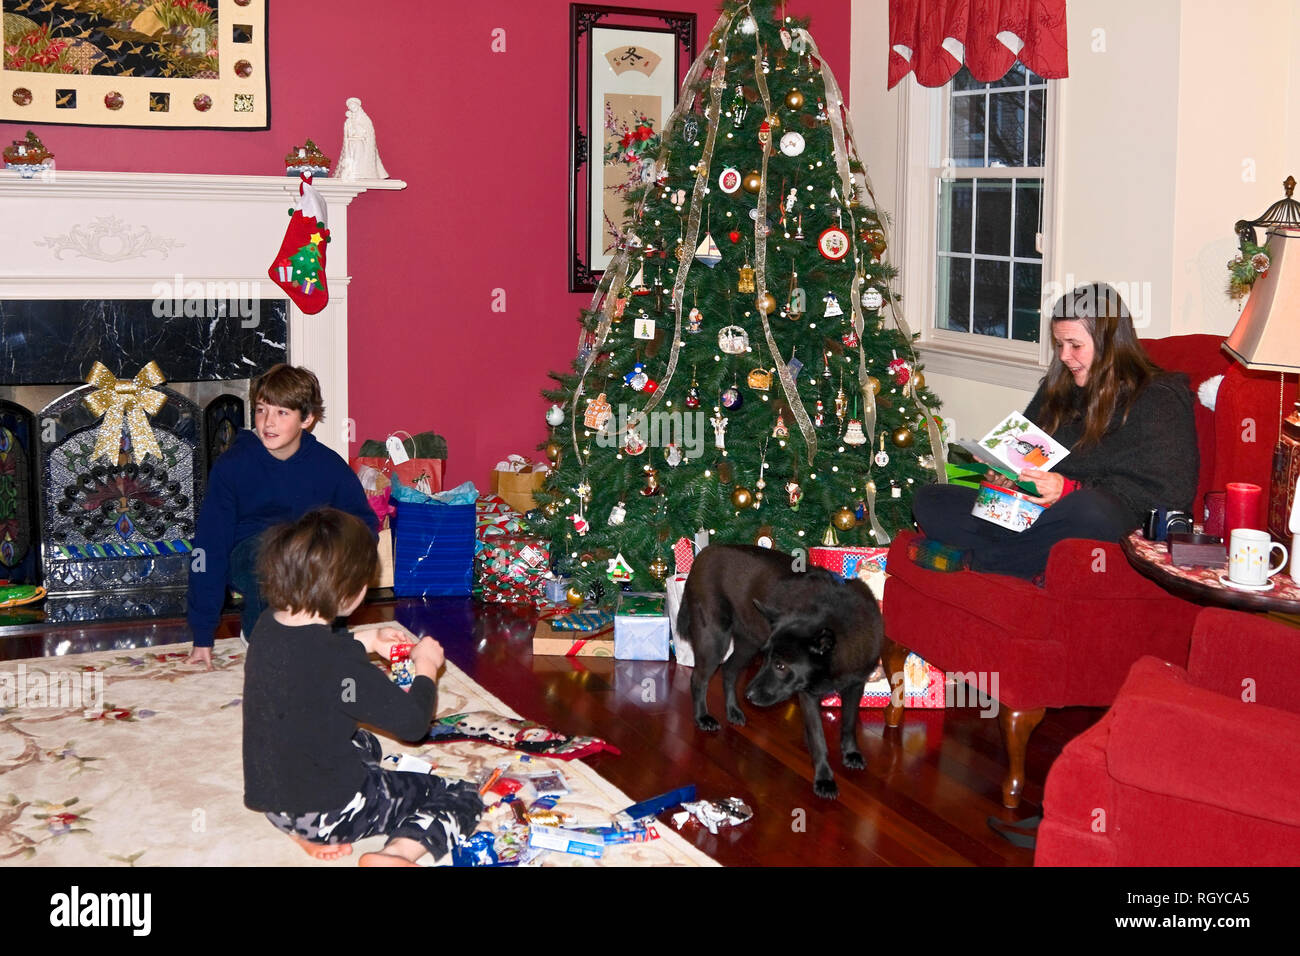 Christmas scene; family; opening gifts; dog; decorated tree; festive; happy; 2 boys; mother; holiday; colorful, bright, horizontal; MR - Stock Image